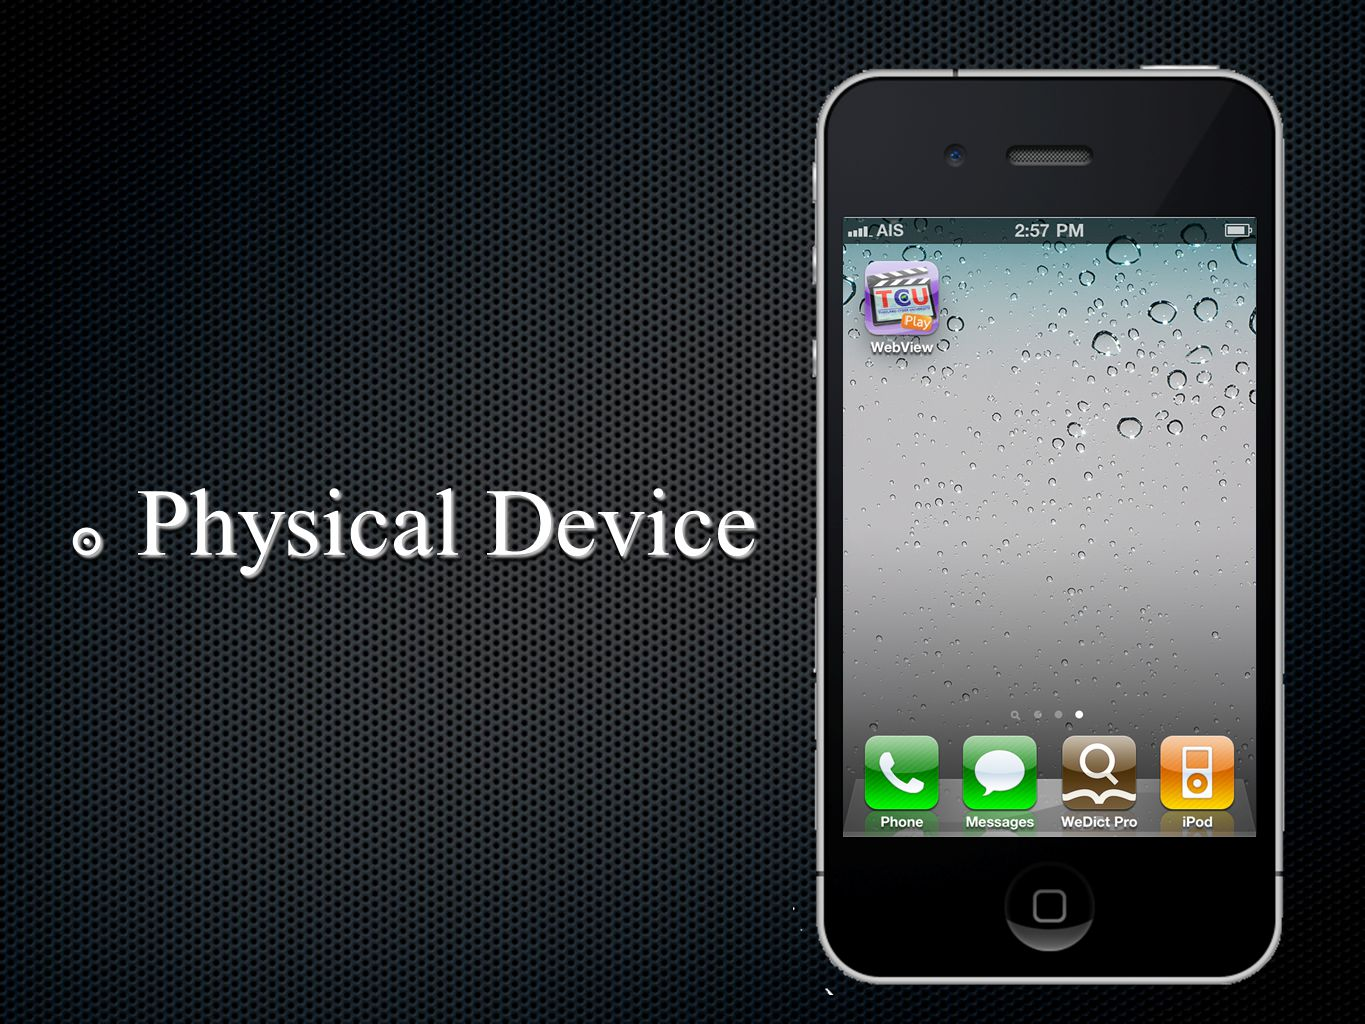 ๏ Physical Device